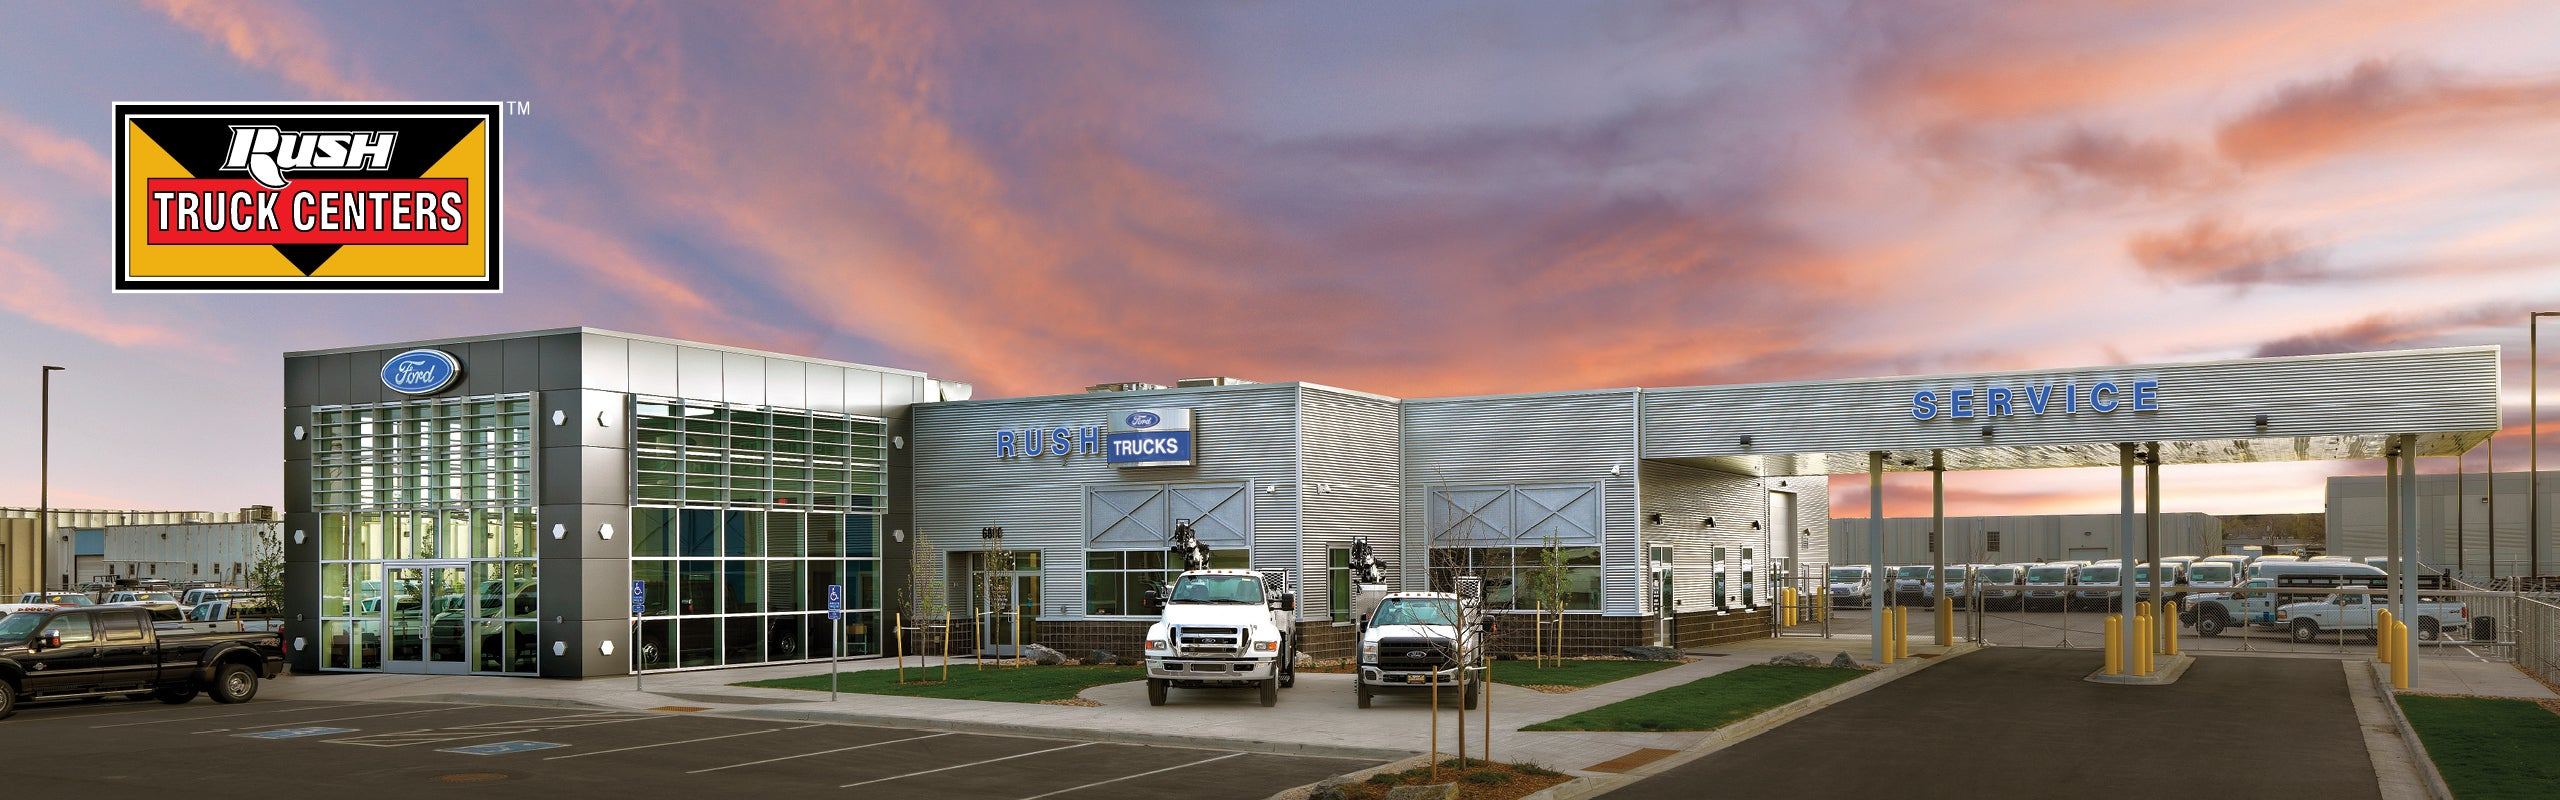 Ford Dealership Modesto >> Ford Dealer In Ceres Ca Used Cars Ceres Rush Truck